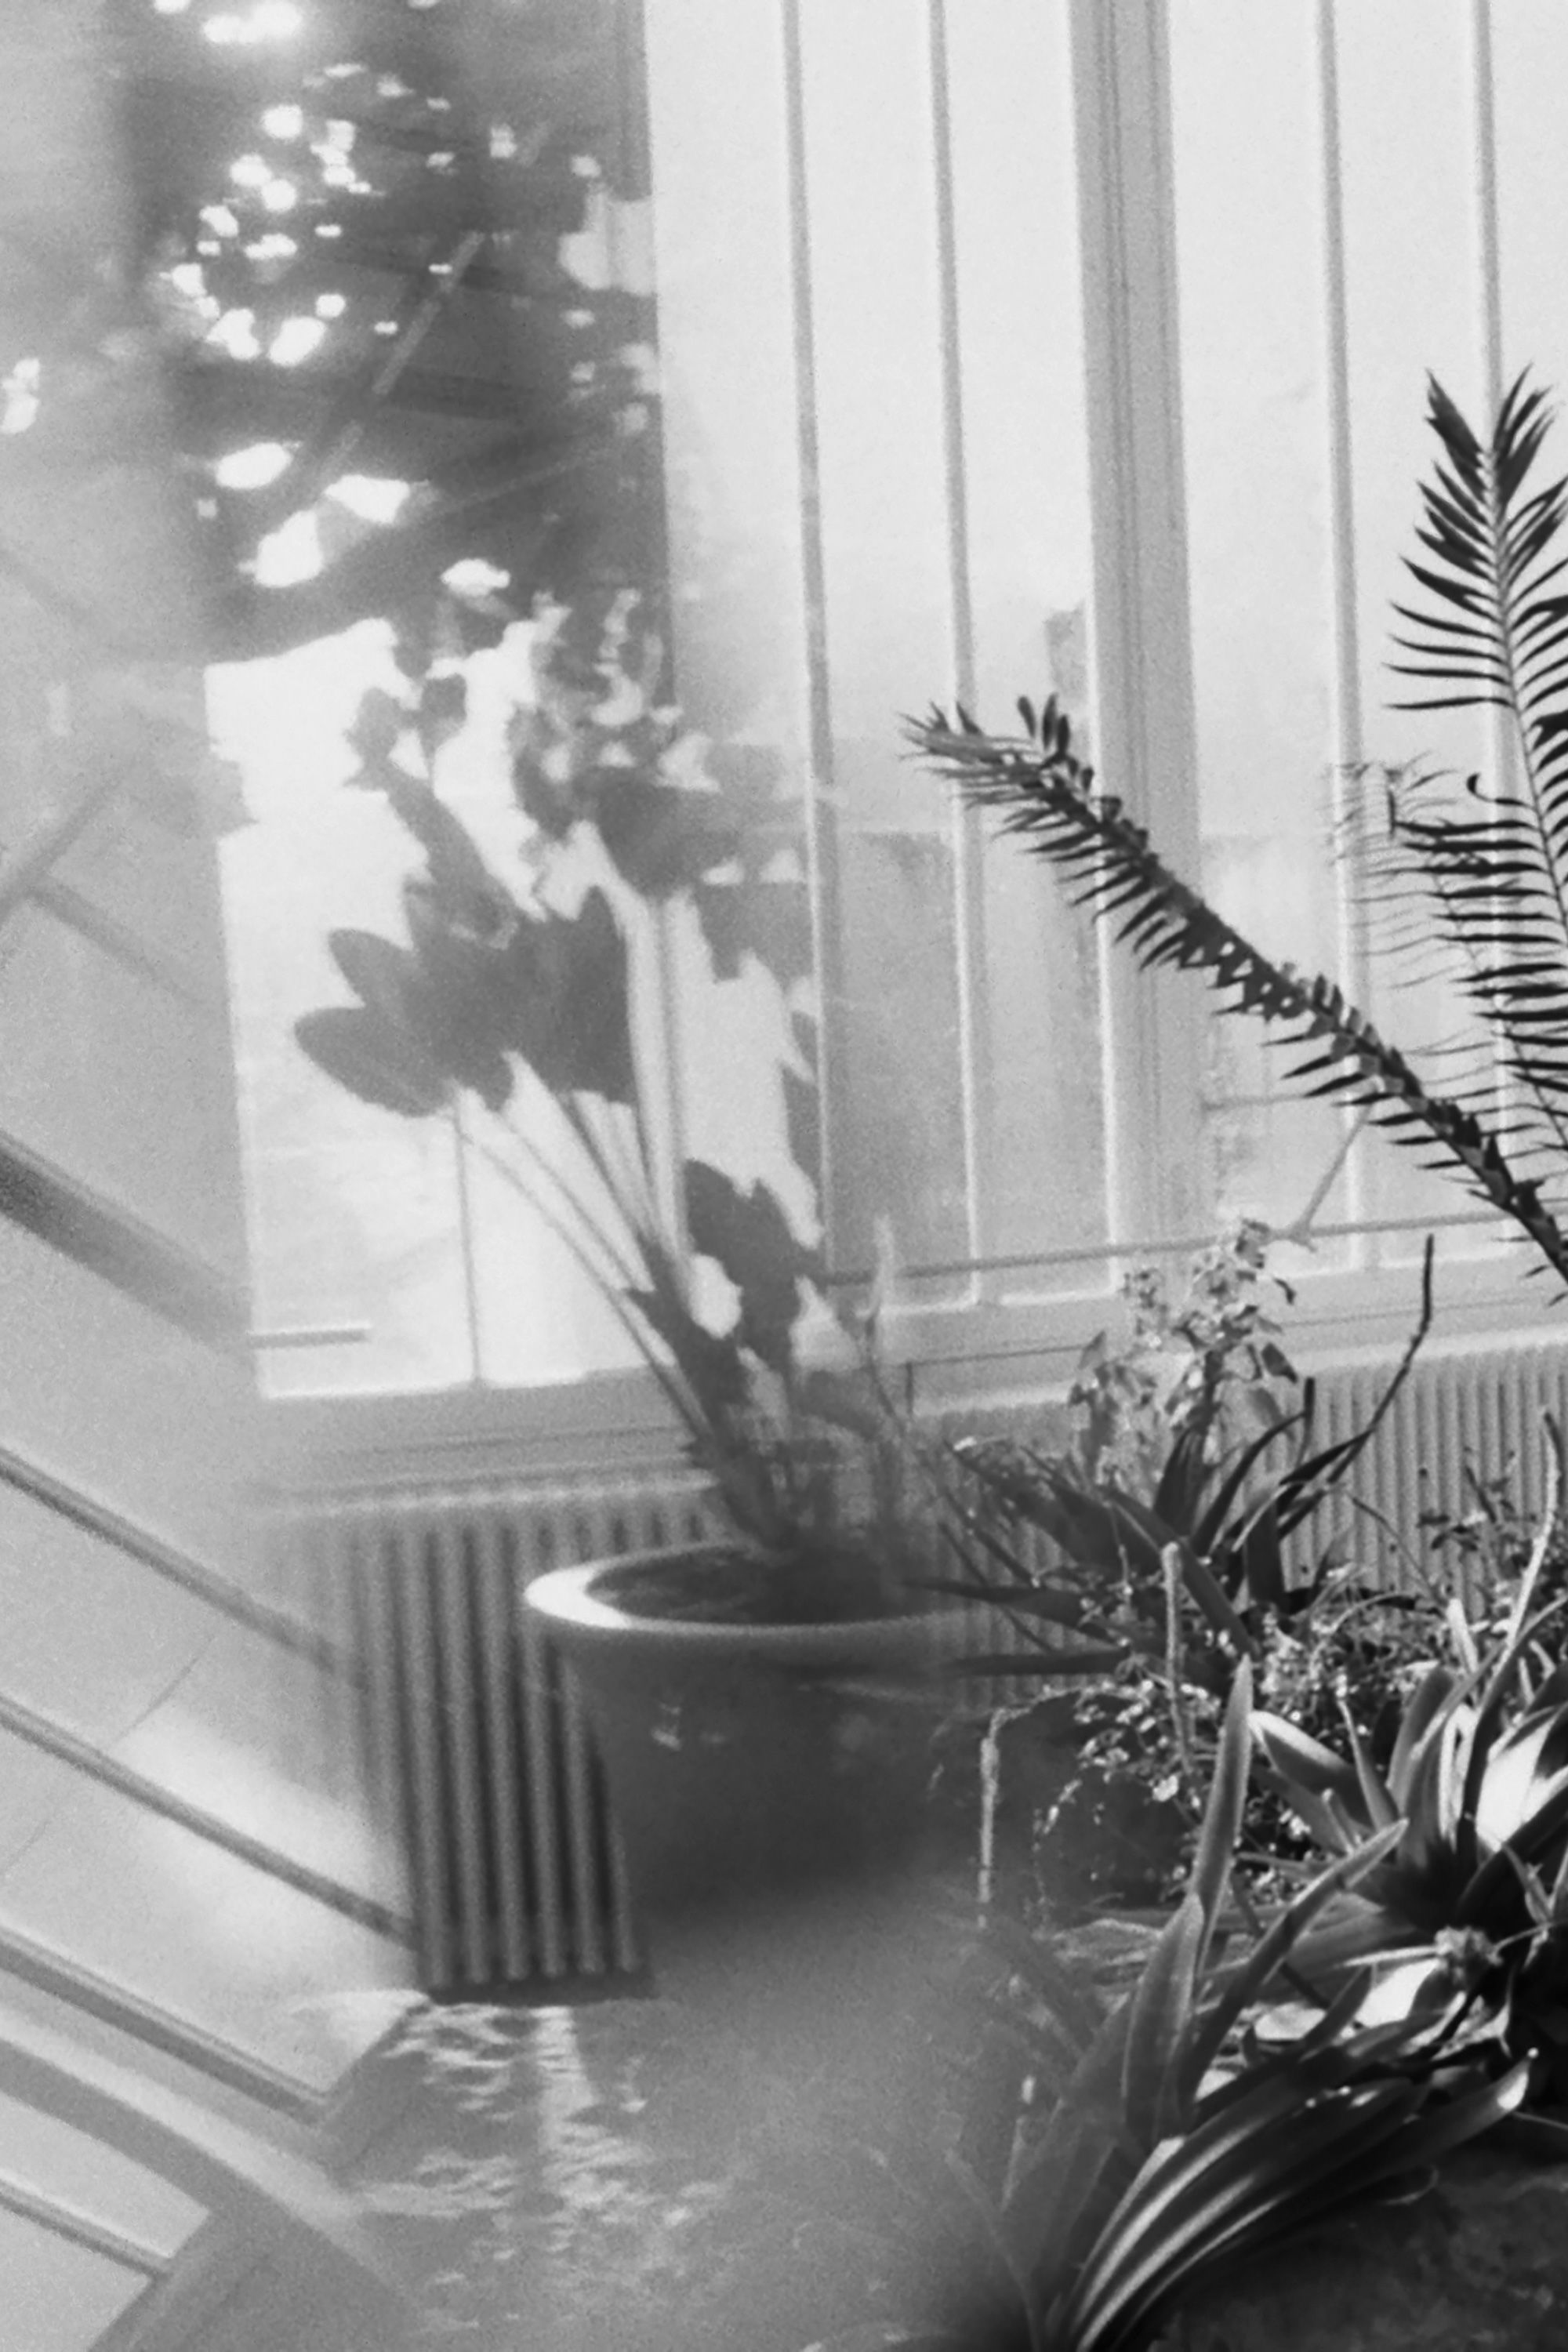 black and white photgraphic image, a house plant